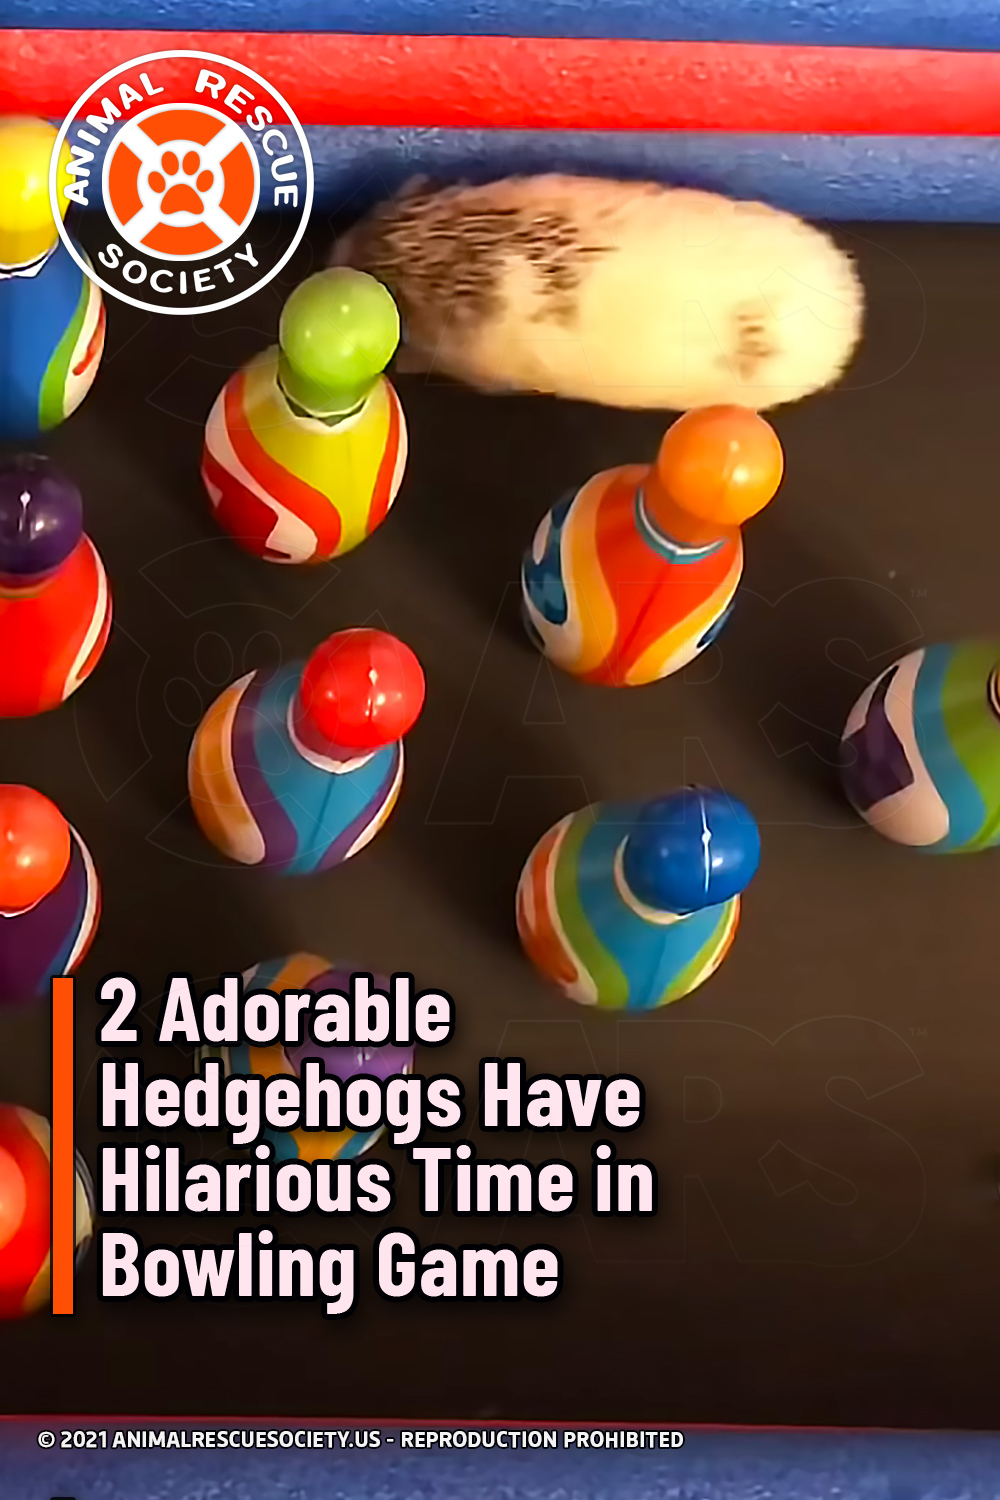 2 Adorable Hedgehogs Have Hilarious Time in Bowling Game